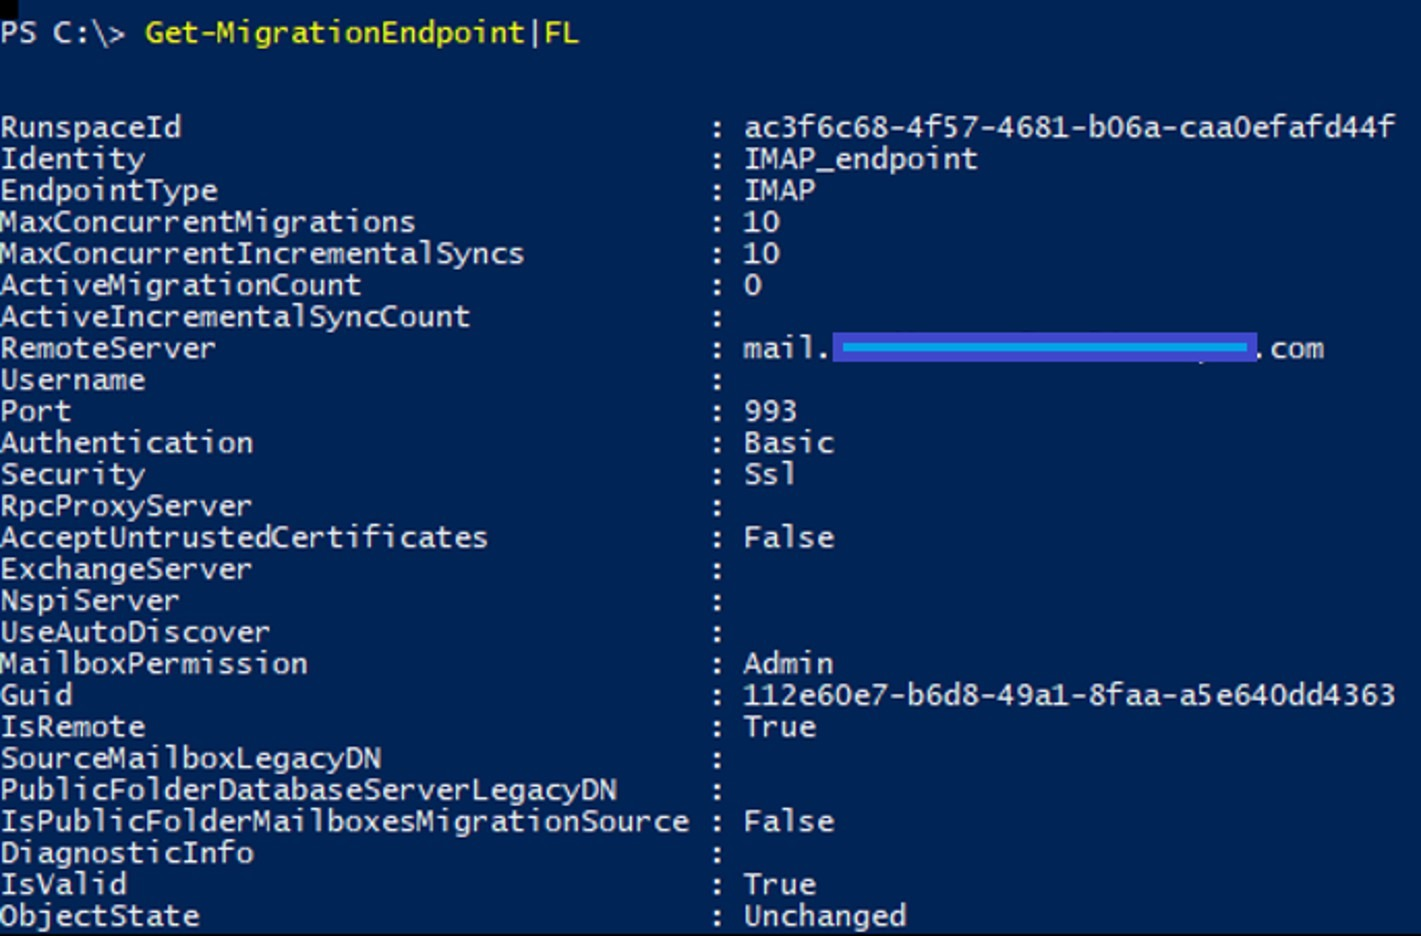 Troubleshooting IMAP Migrations to Office 365 - Microsoft